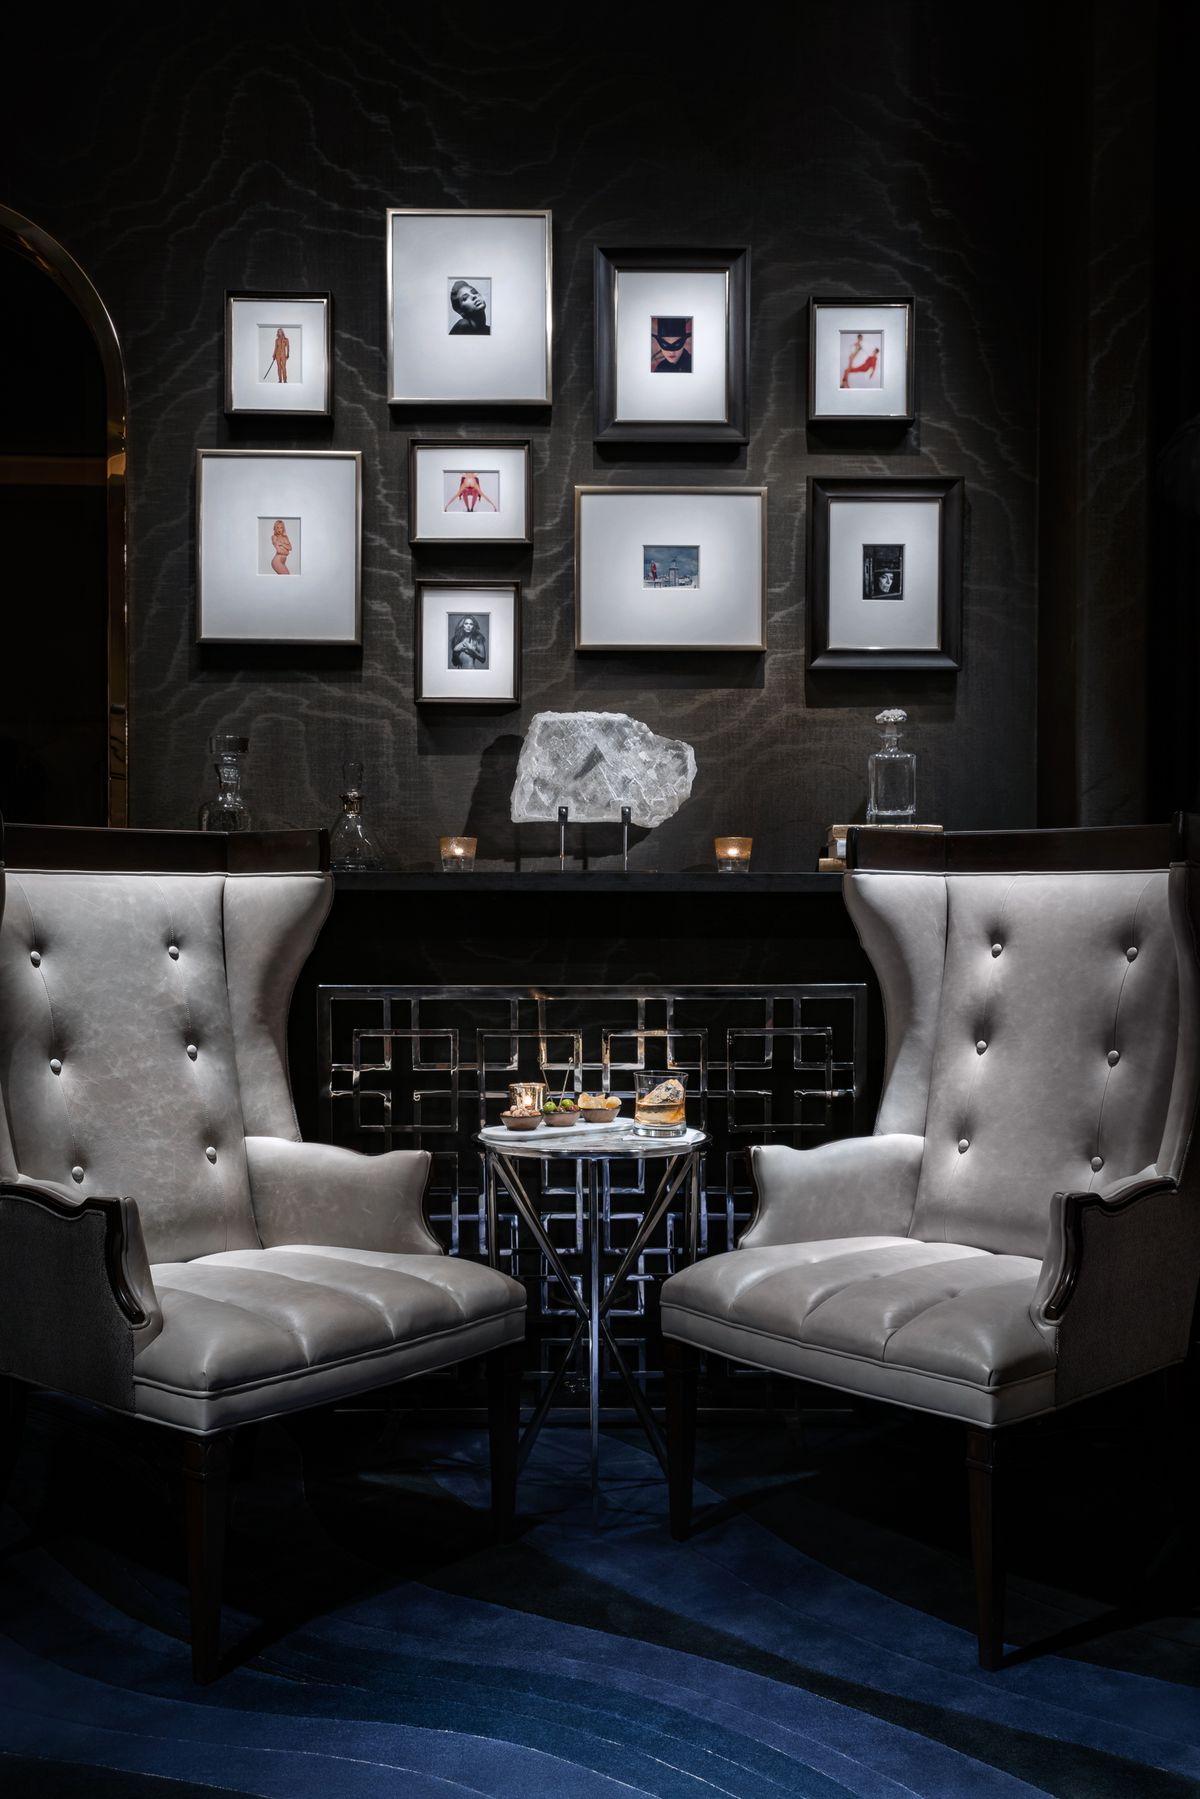 The fireplace at Mr. Coco